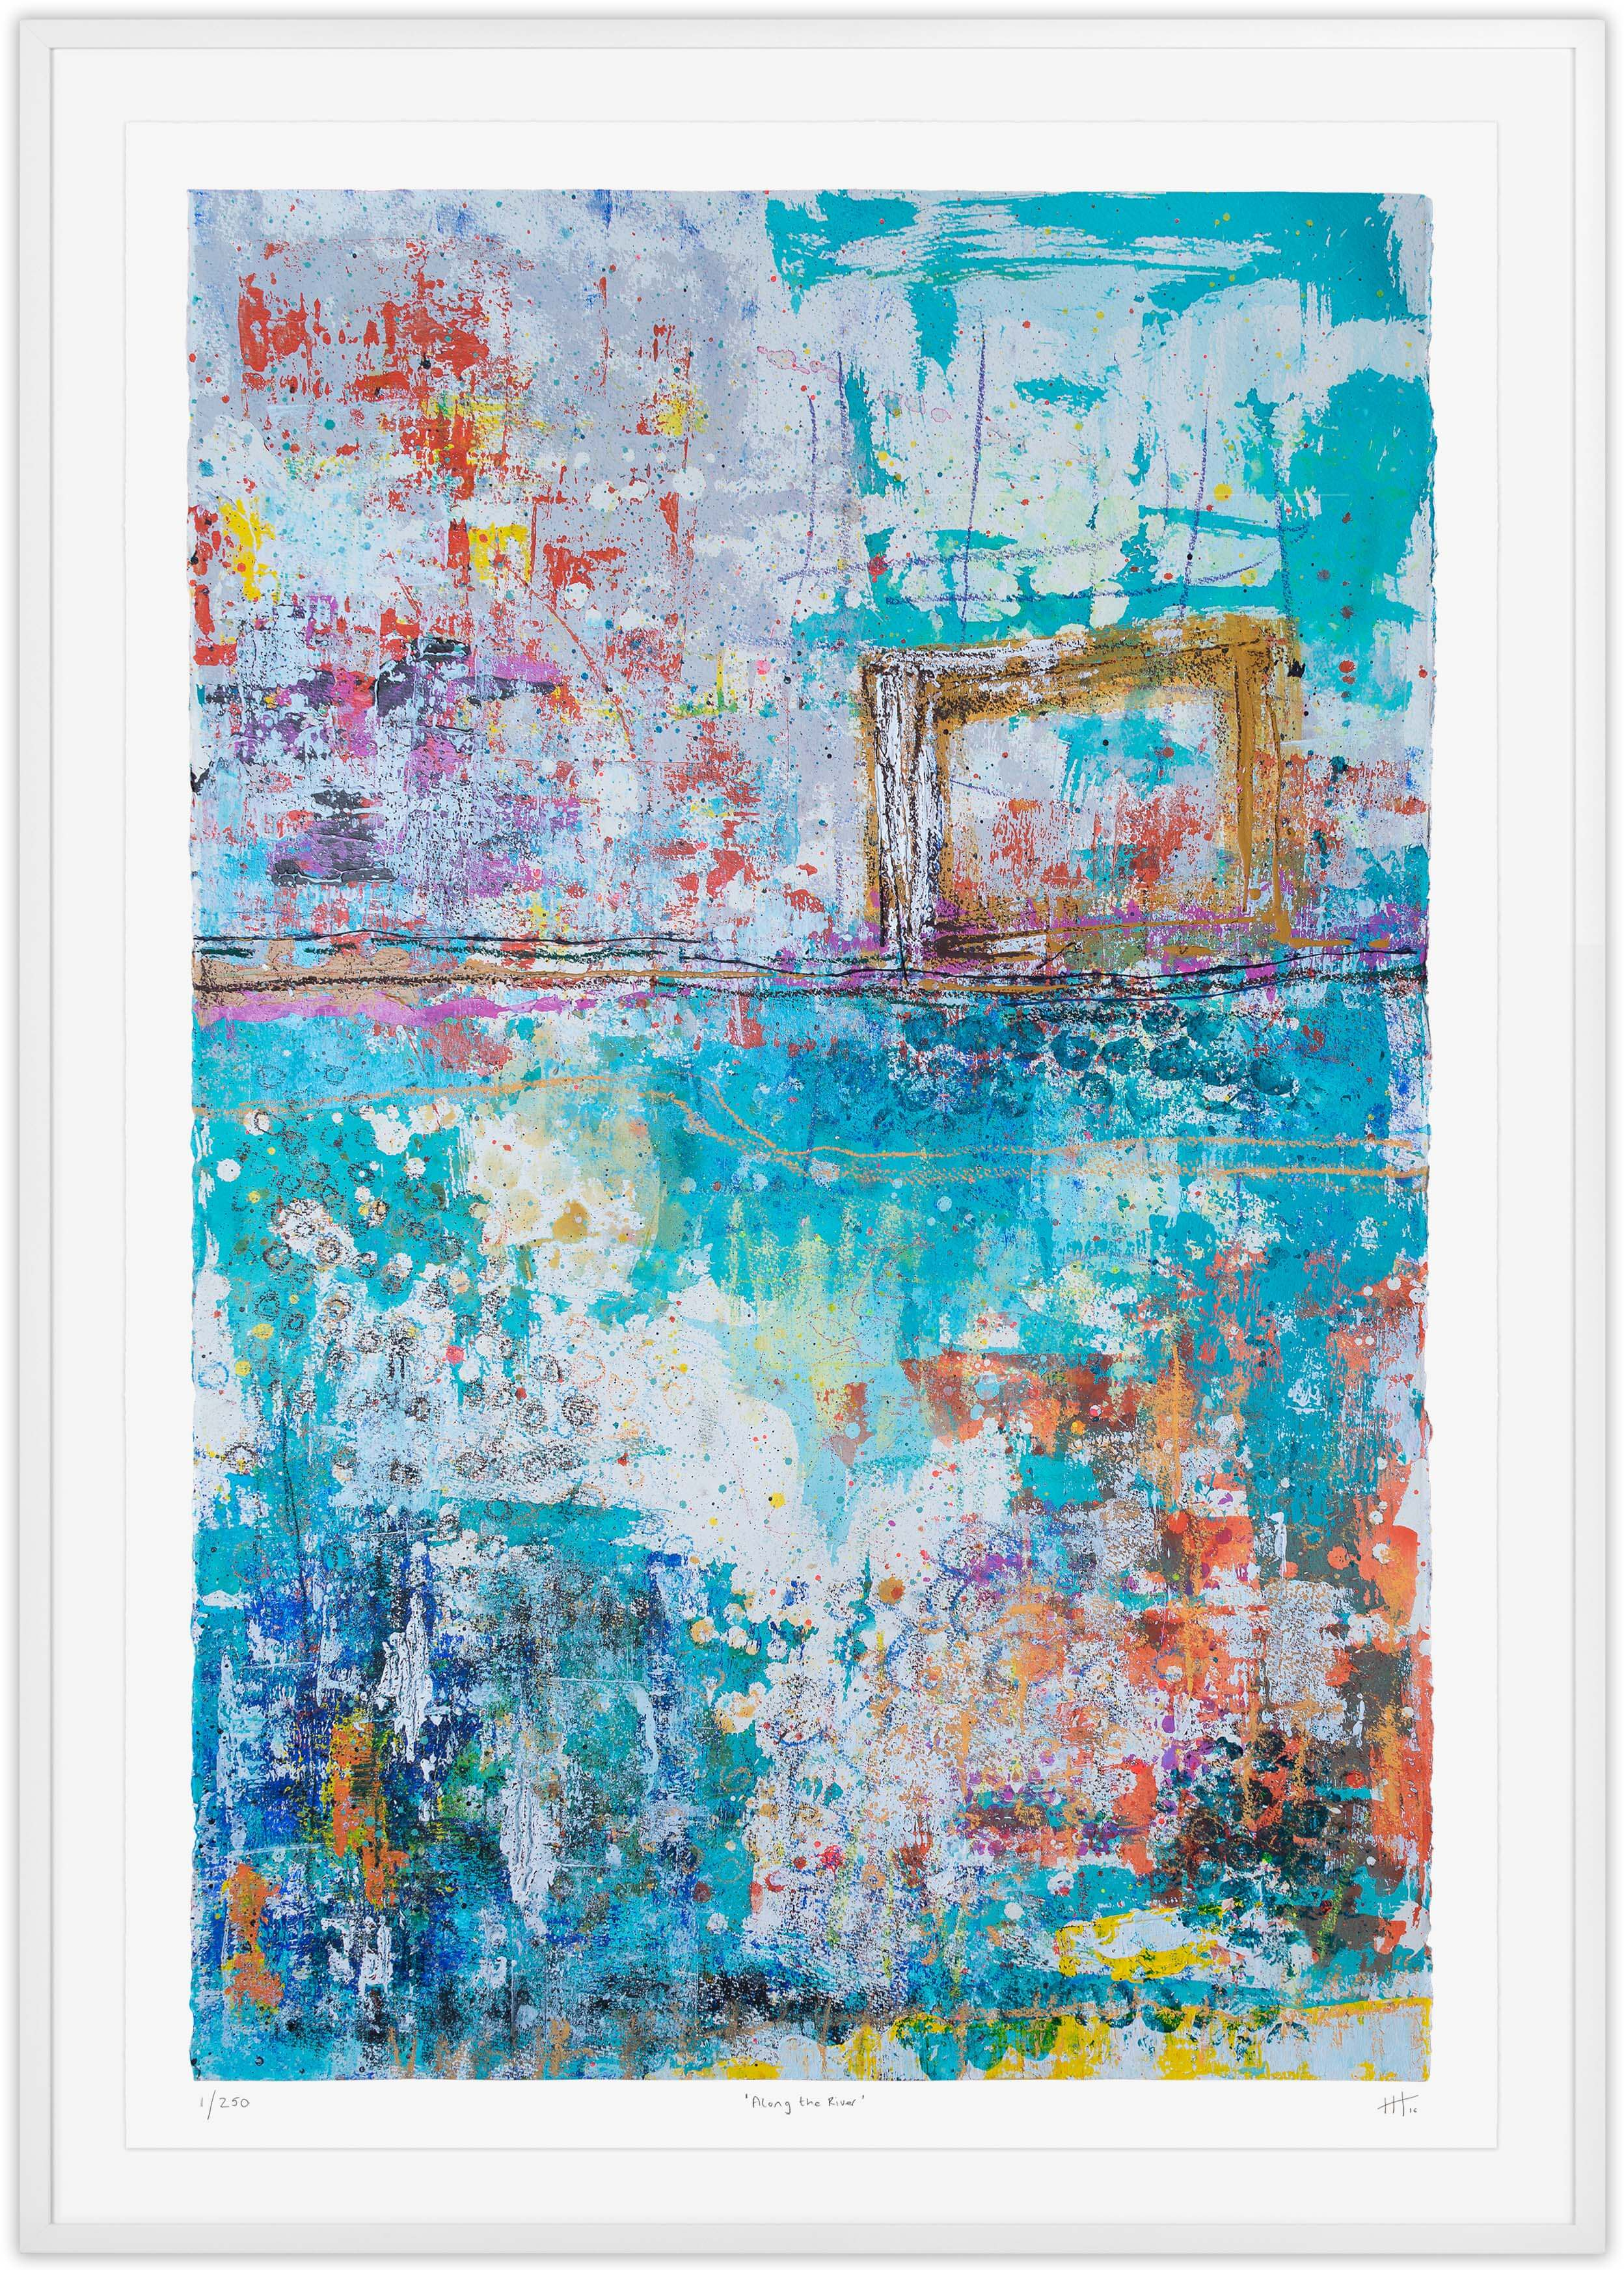 'Along the River' LIMITED EDITION GICLEE PRINT / Edition of 250 Size: 105cm x 76cm (framed)  £475 (includes frame) / £300 unframed  purchase via    contact form